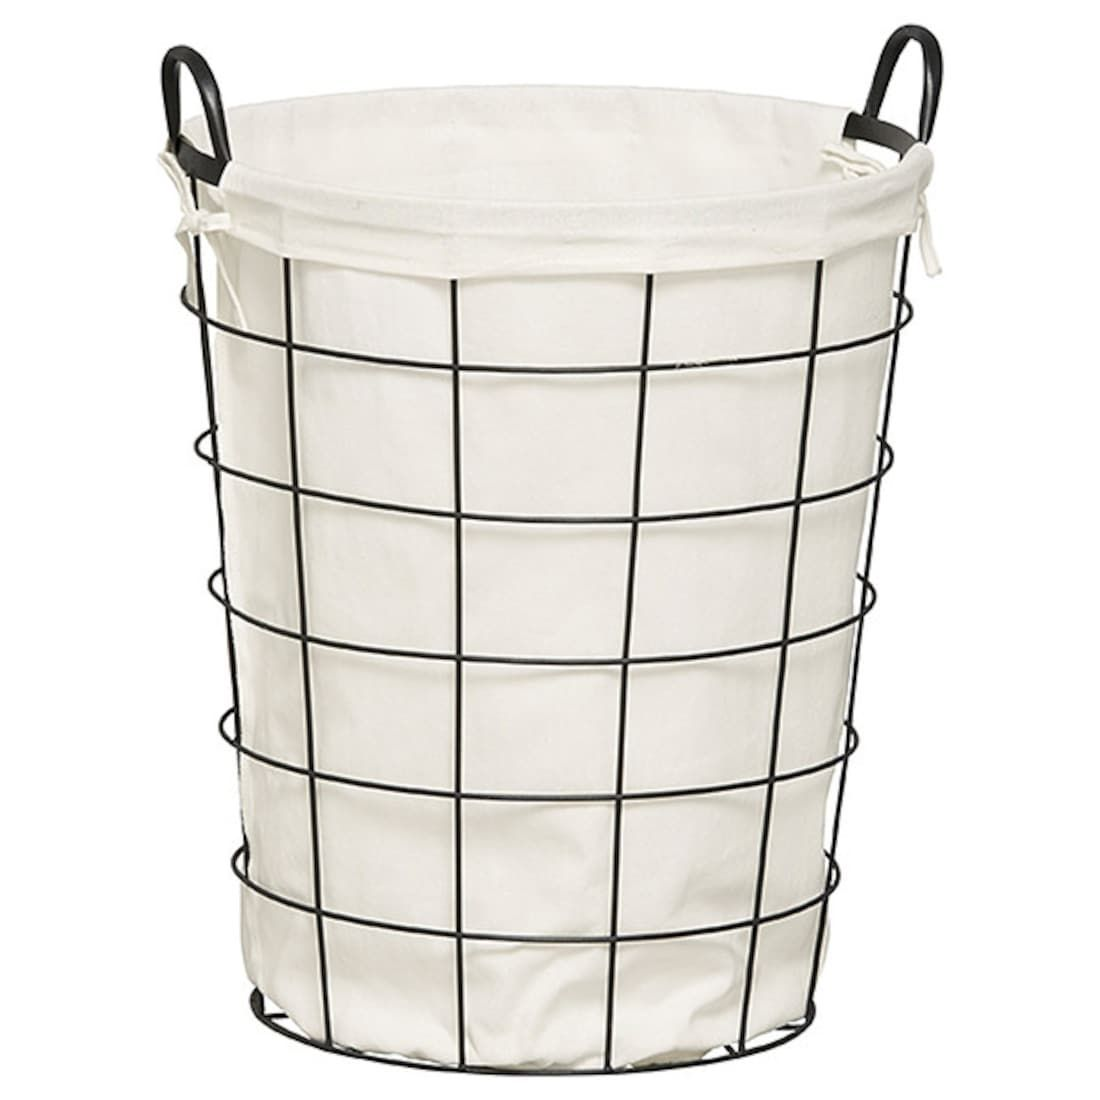 Metal Laundry Hamper Black Metal Laundry Basket Laundry